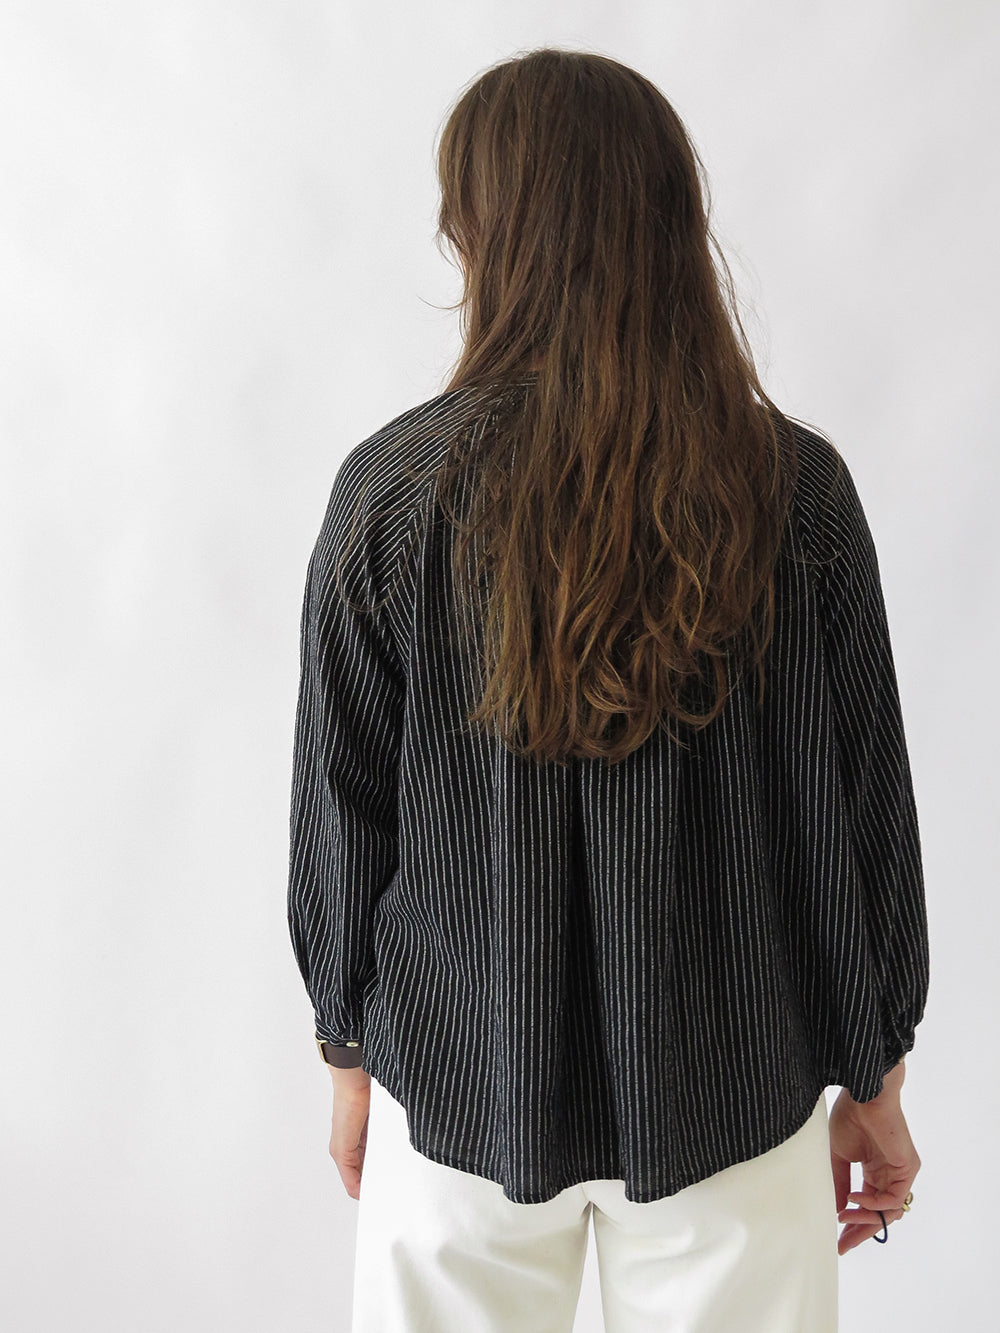 bsbee bastia shirt in payson stripe